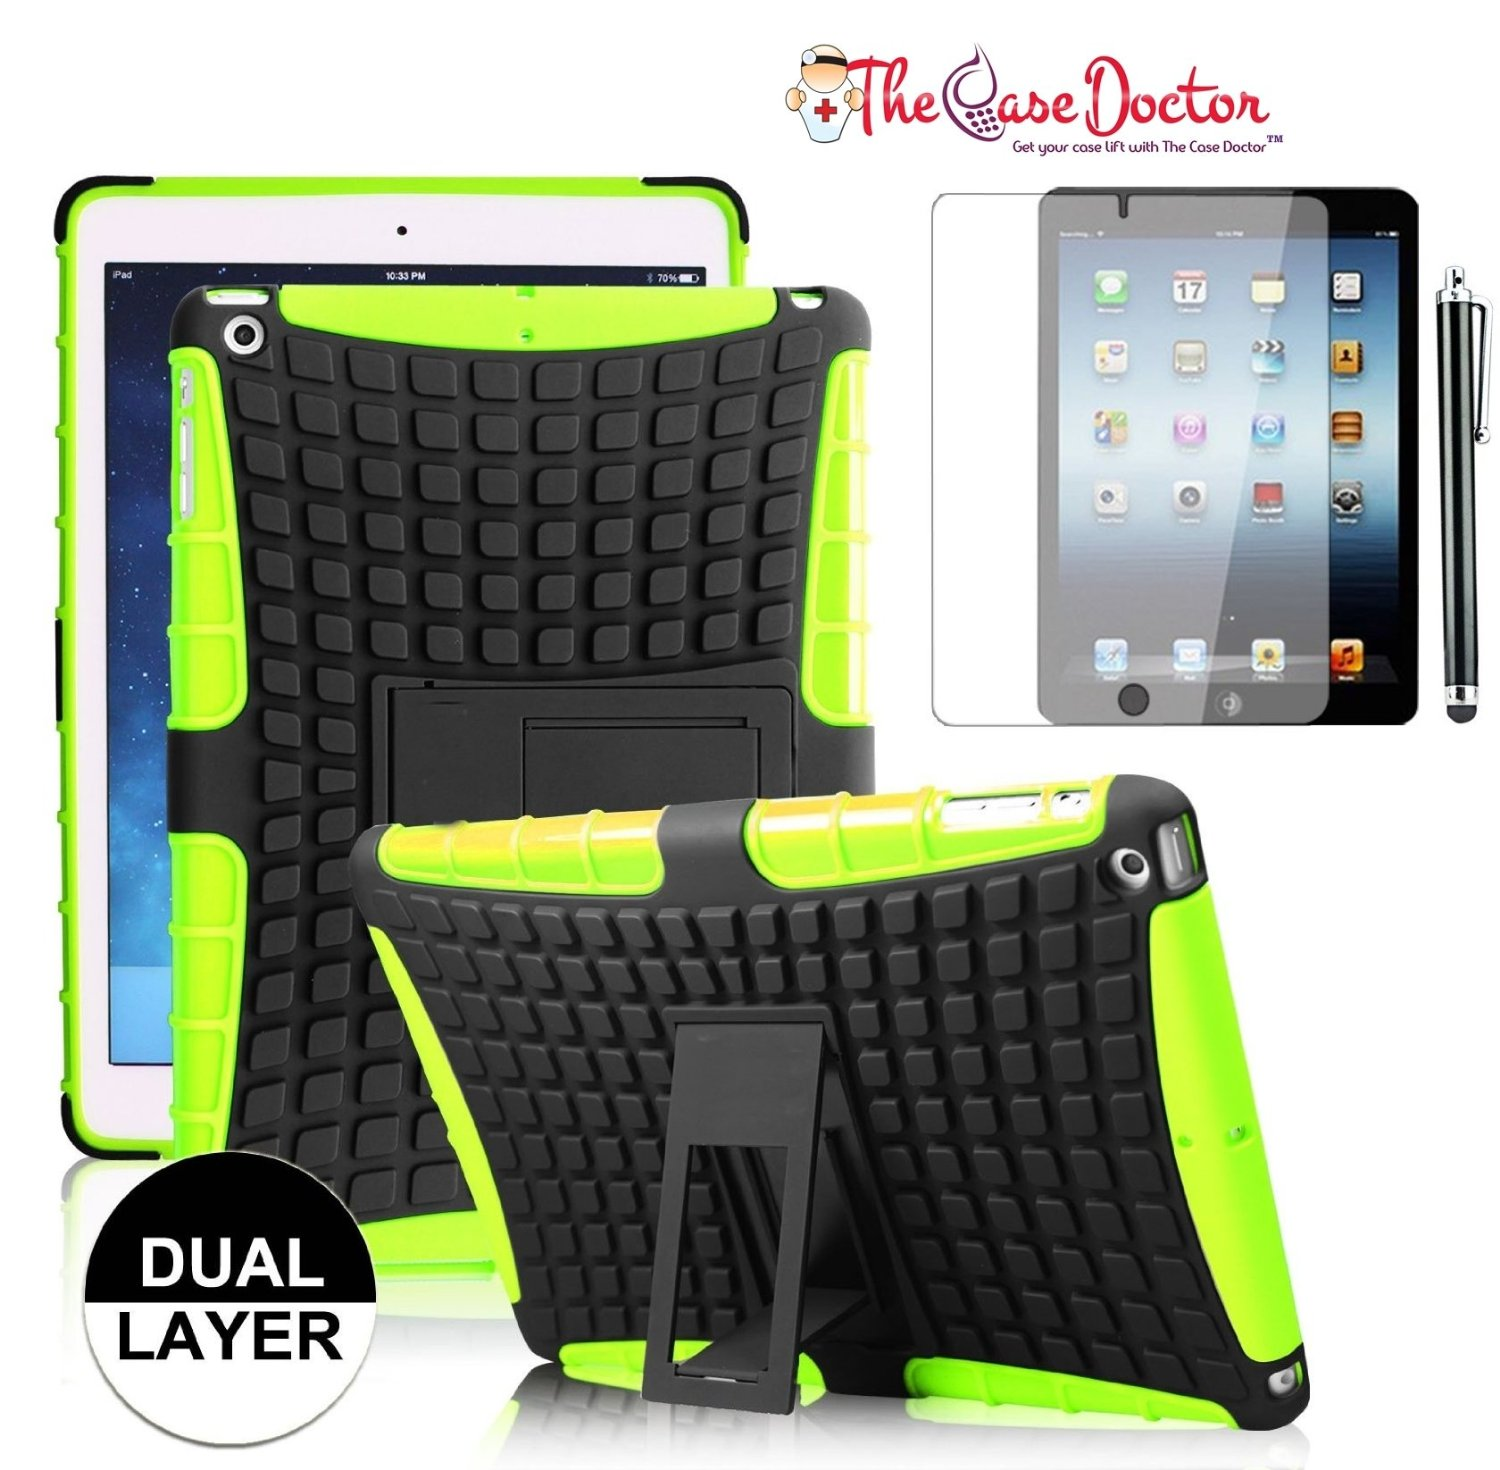 TCD iPad Air 1 Grenade Armor Hybrid Shield Case Dual Layer Protection with Kickst